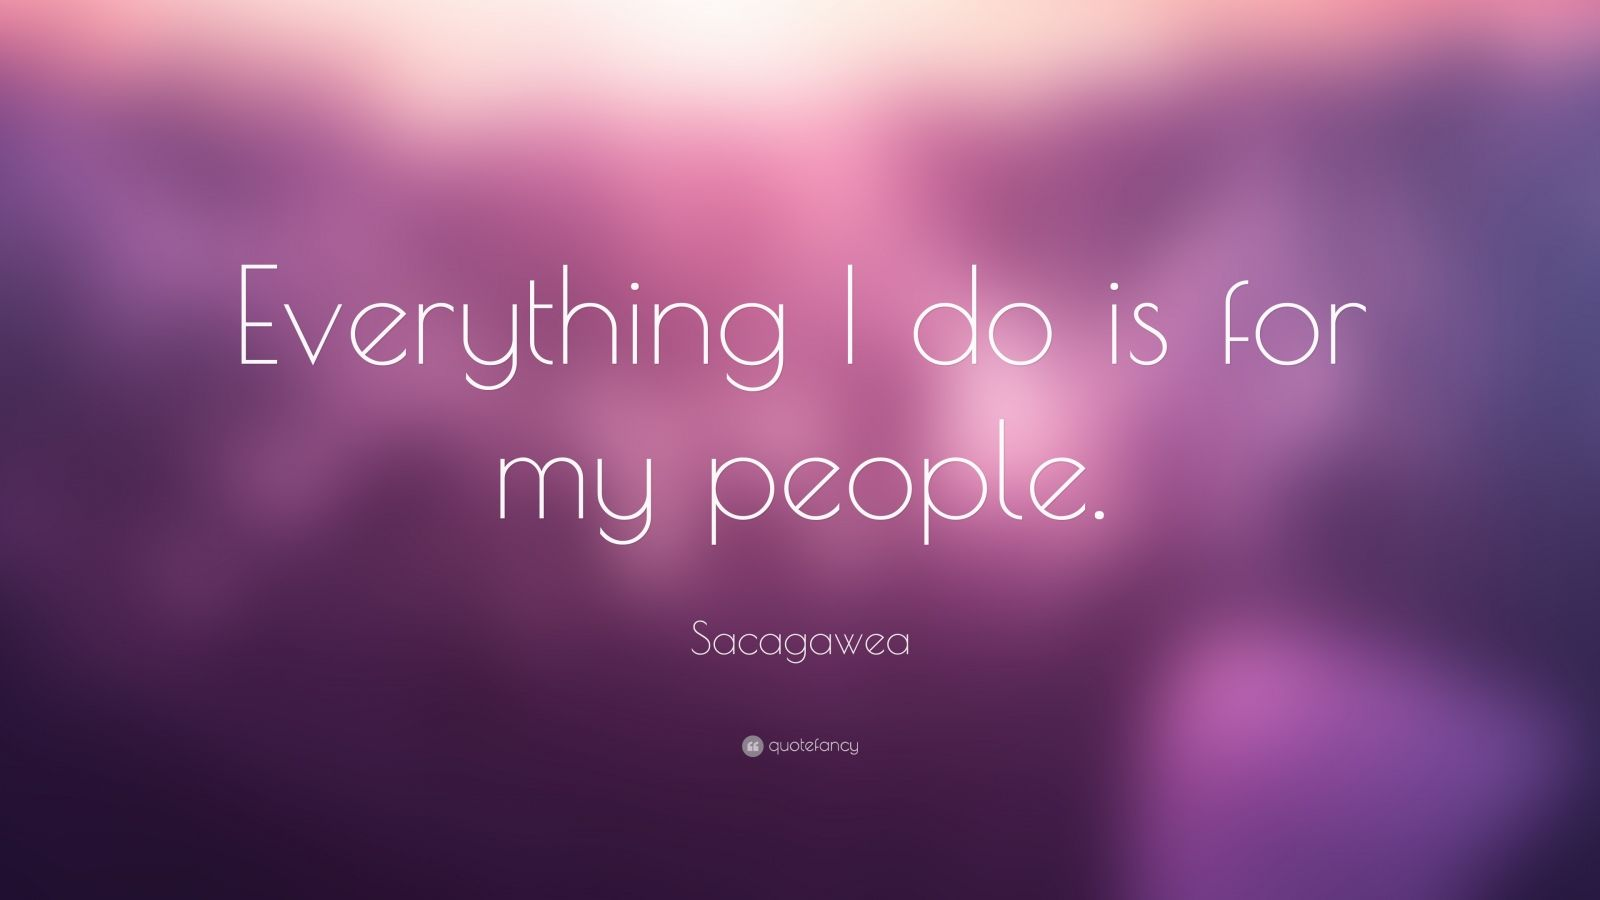 Steve Jobs Motivational Quotes Wallpaper Sacagawea Quotes 3 Wallpapers Quotefancy